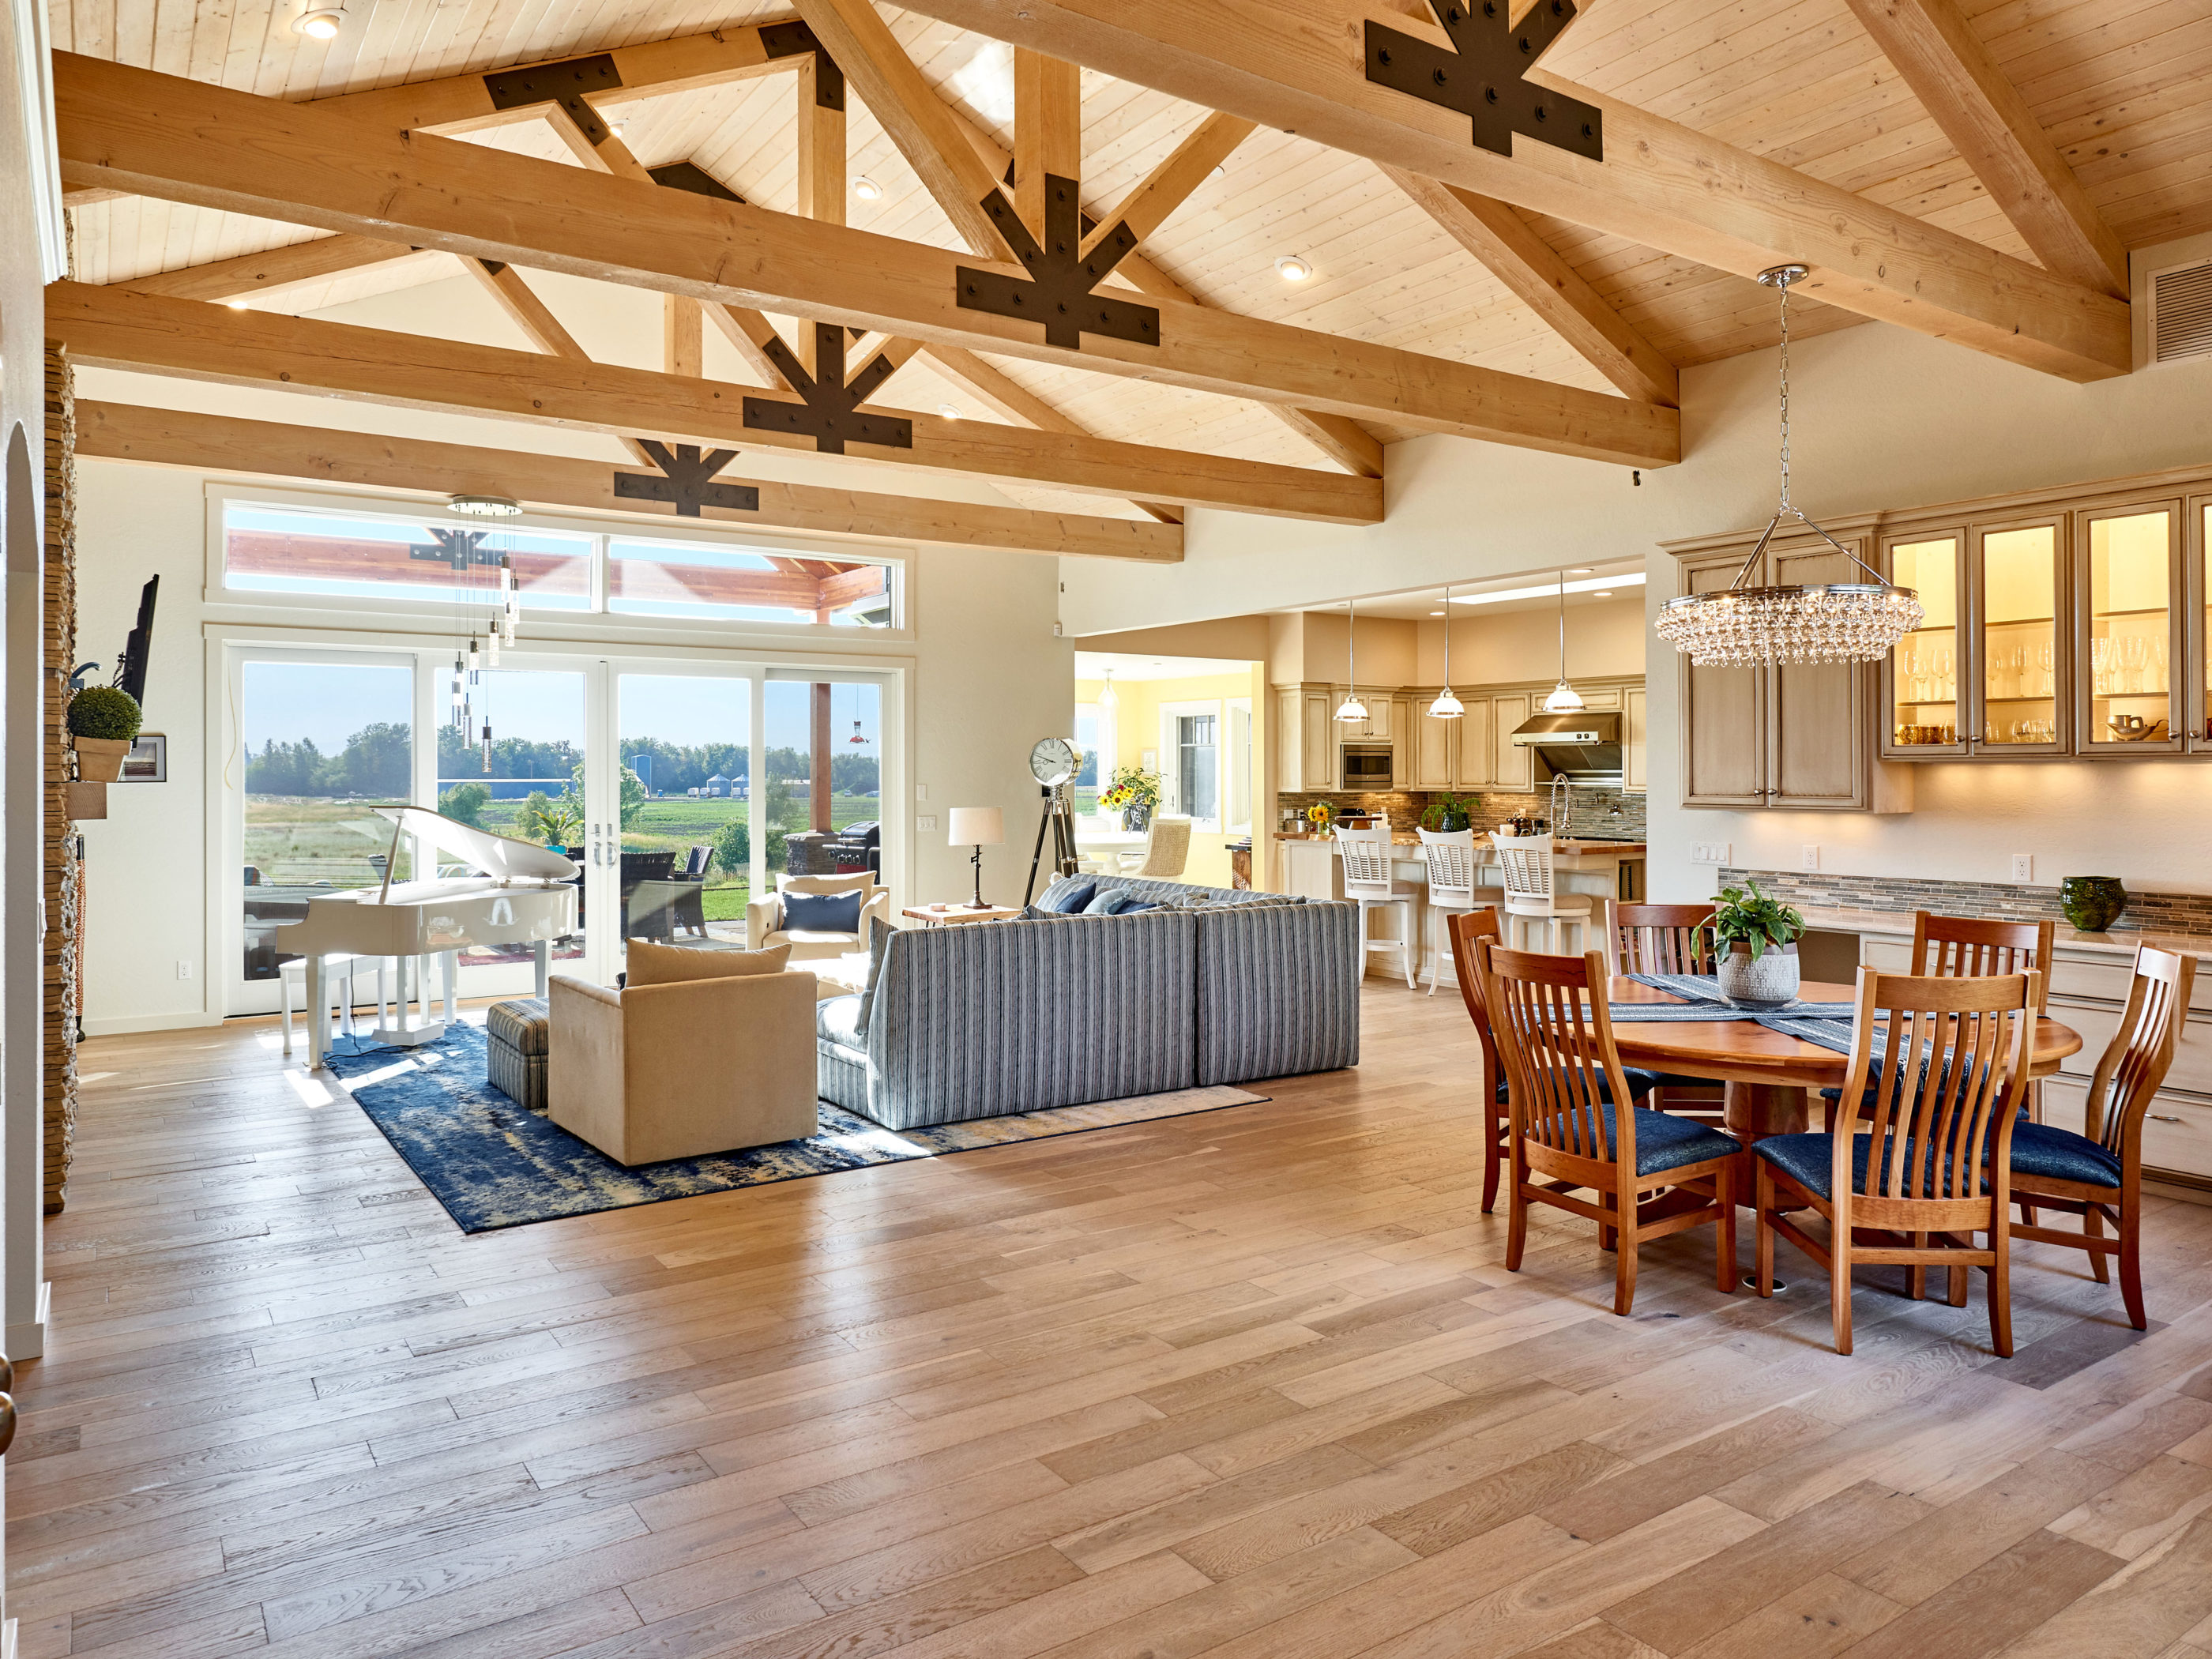 open concept living area with timber beams